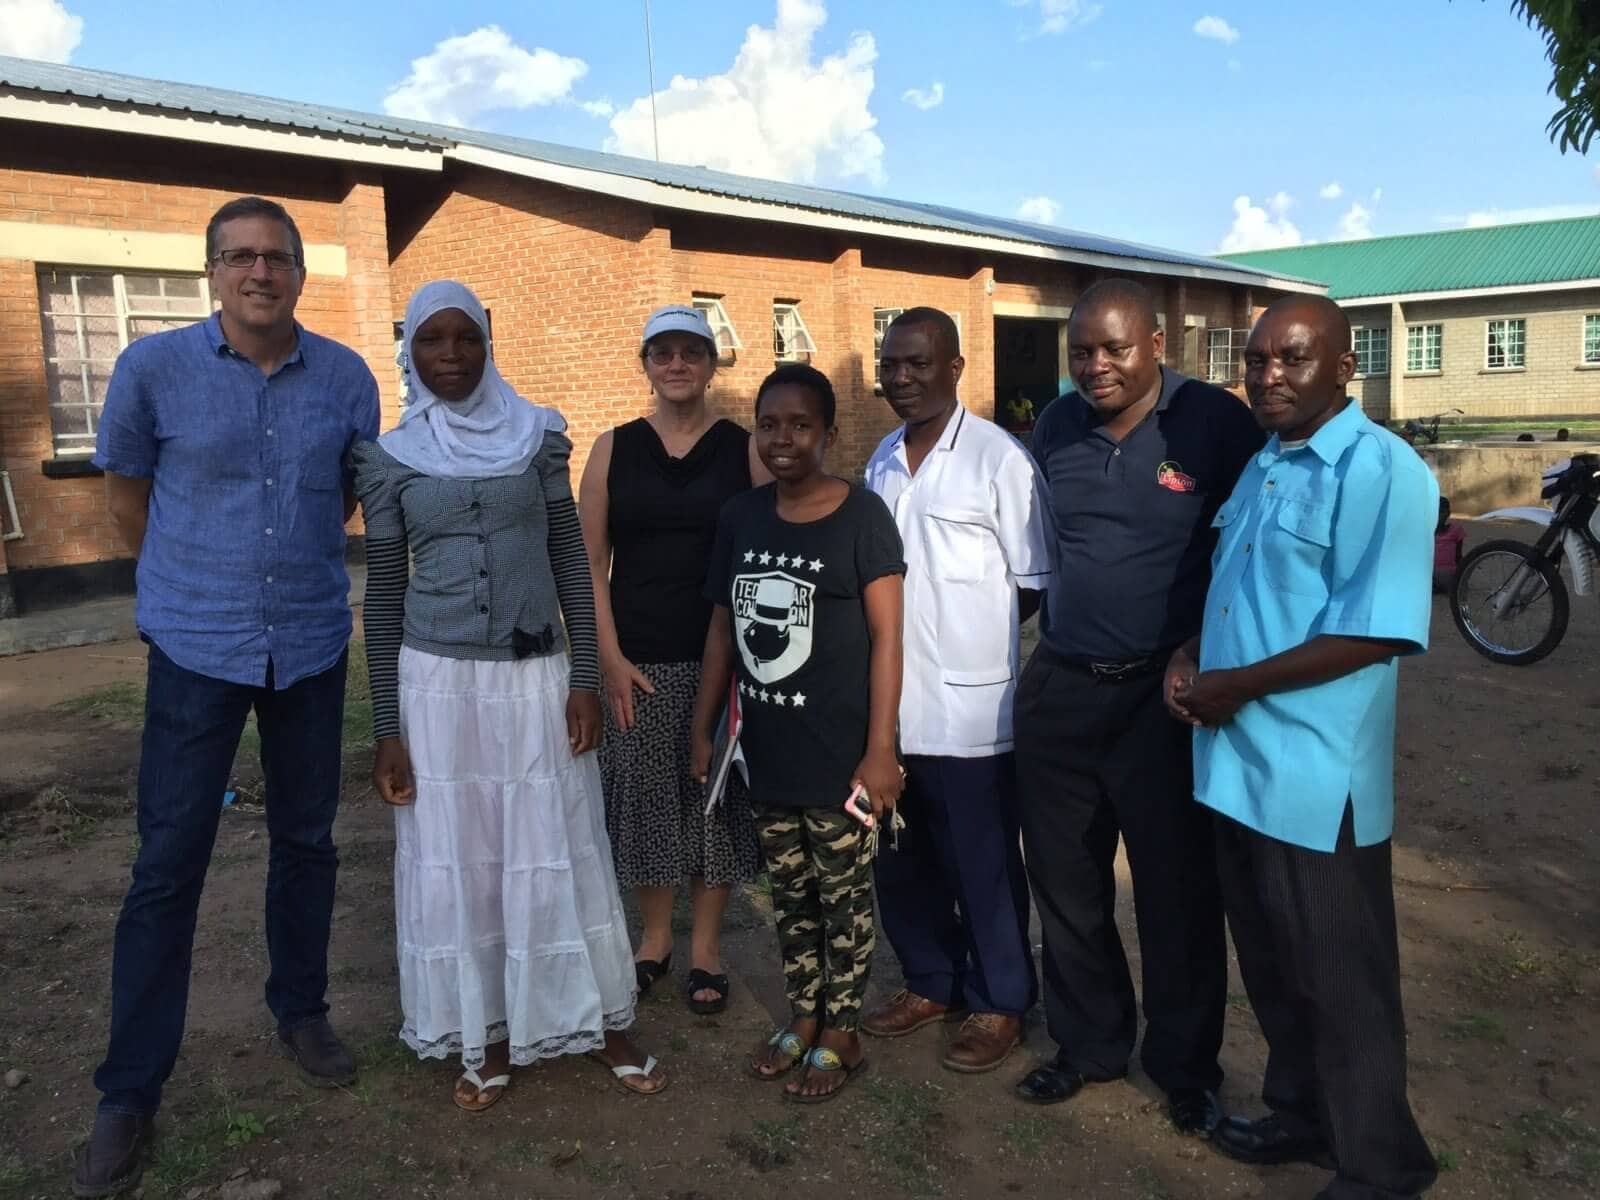 Michael Nyenhuis and Dr. E. Anne Peterson of Americares with staff from the Malombe health center in Malombe, Malawi.